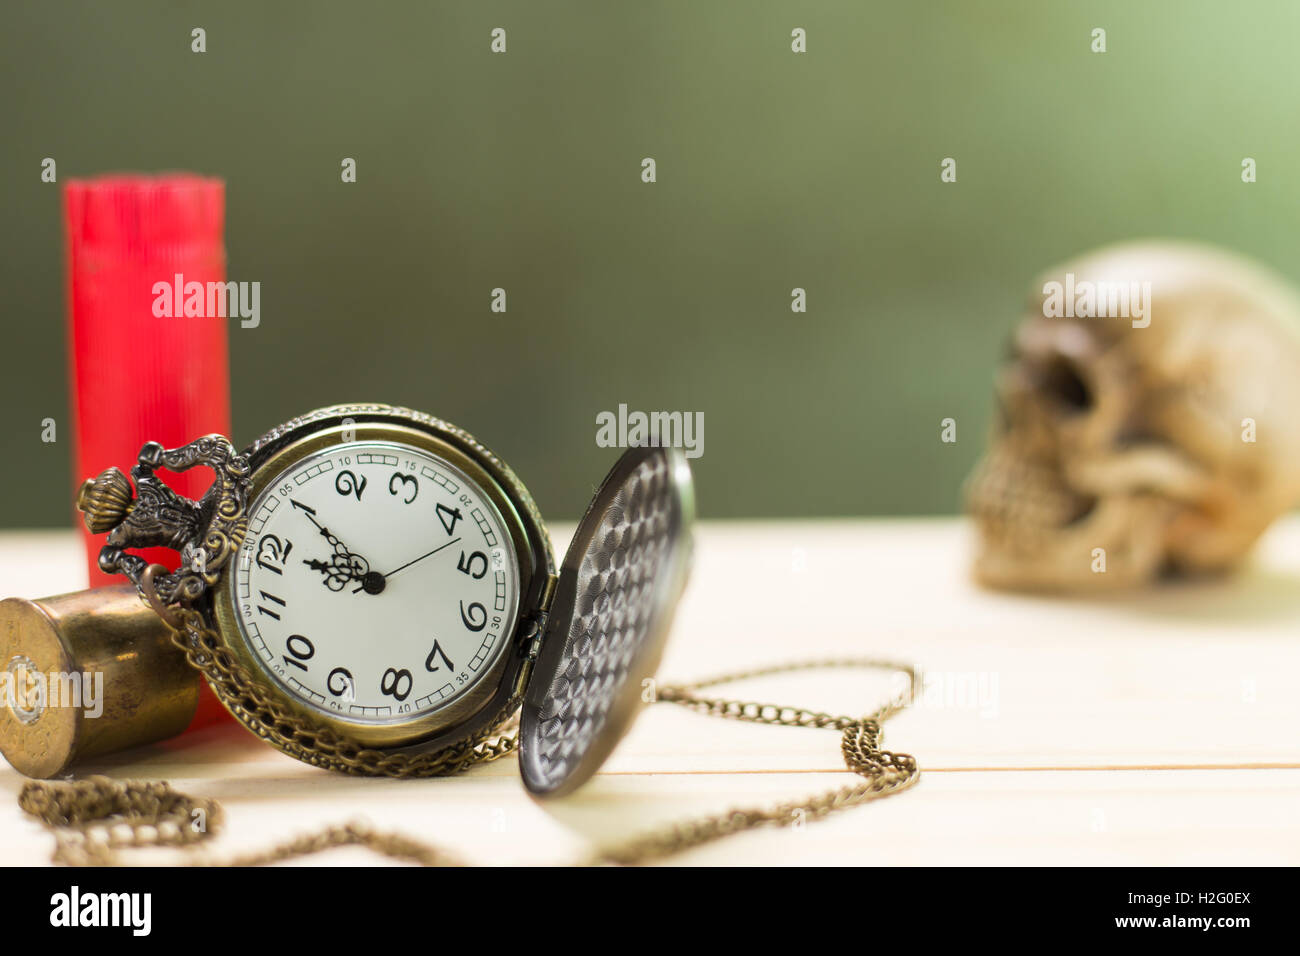 Still life antique clock placed on a wooden floor and a red shotgun shell with human skull on the background. - Stock Image